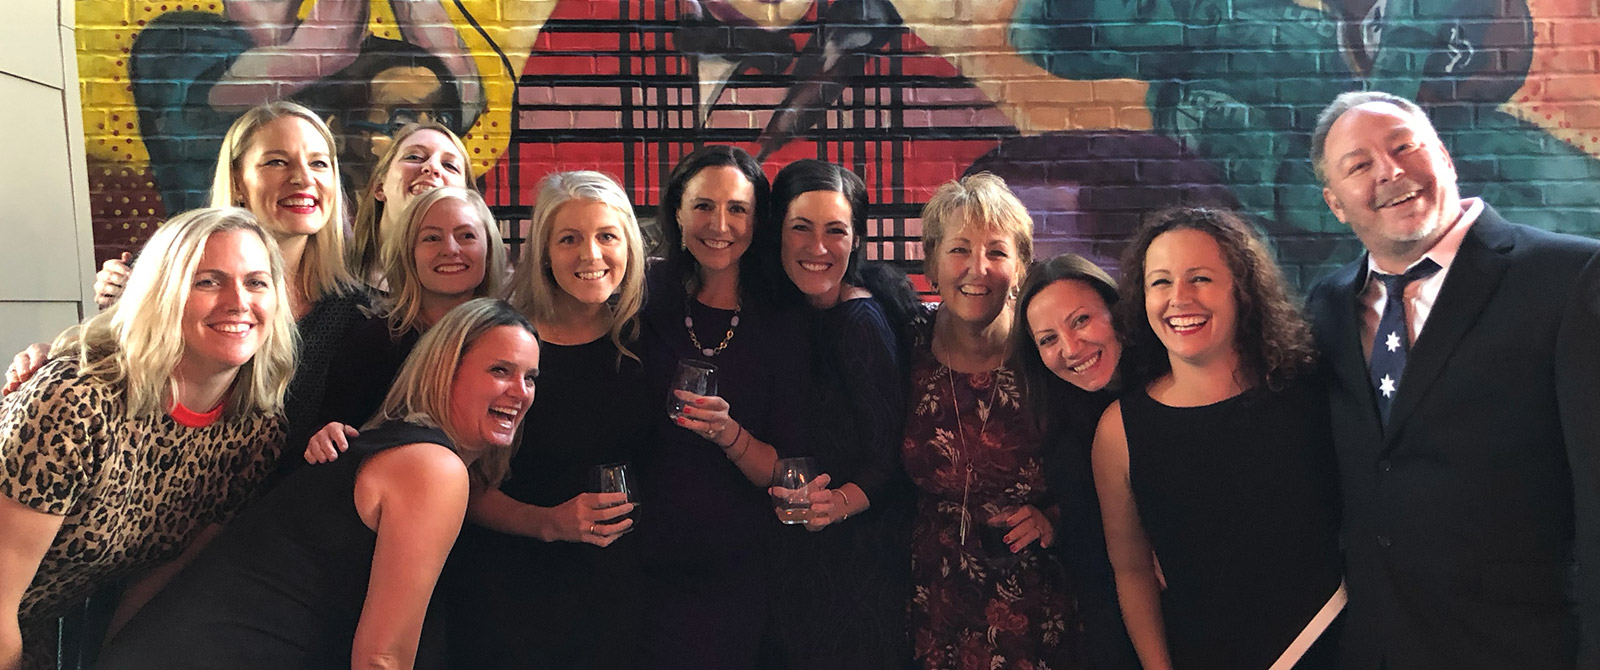 Down Under Endeavours celebrates 20 years in business!